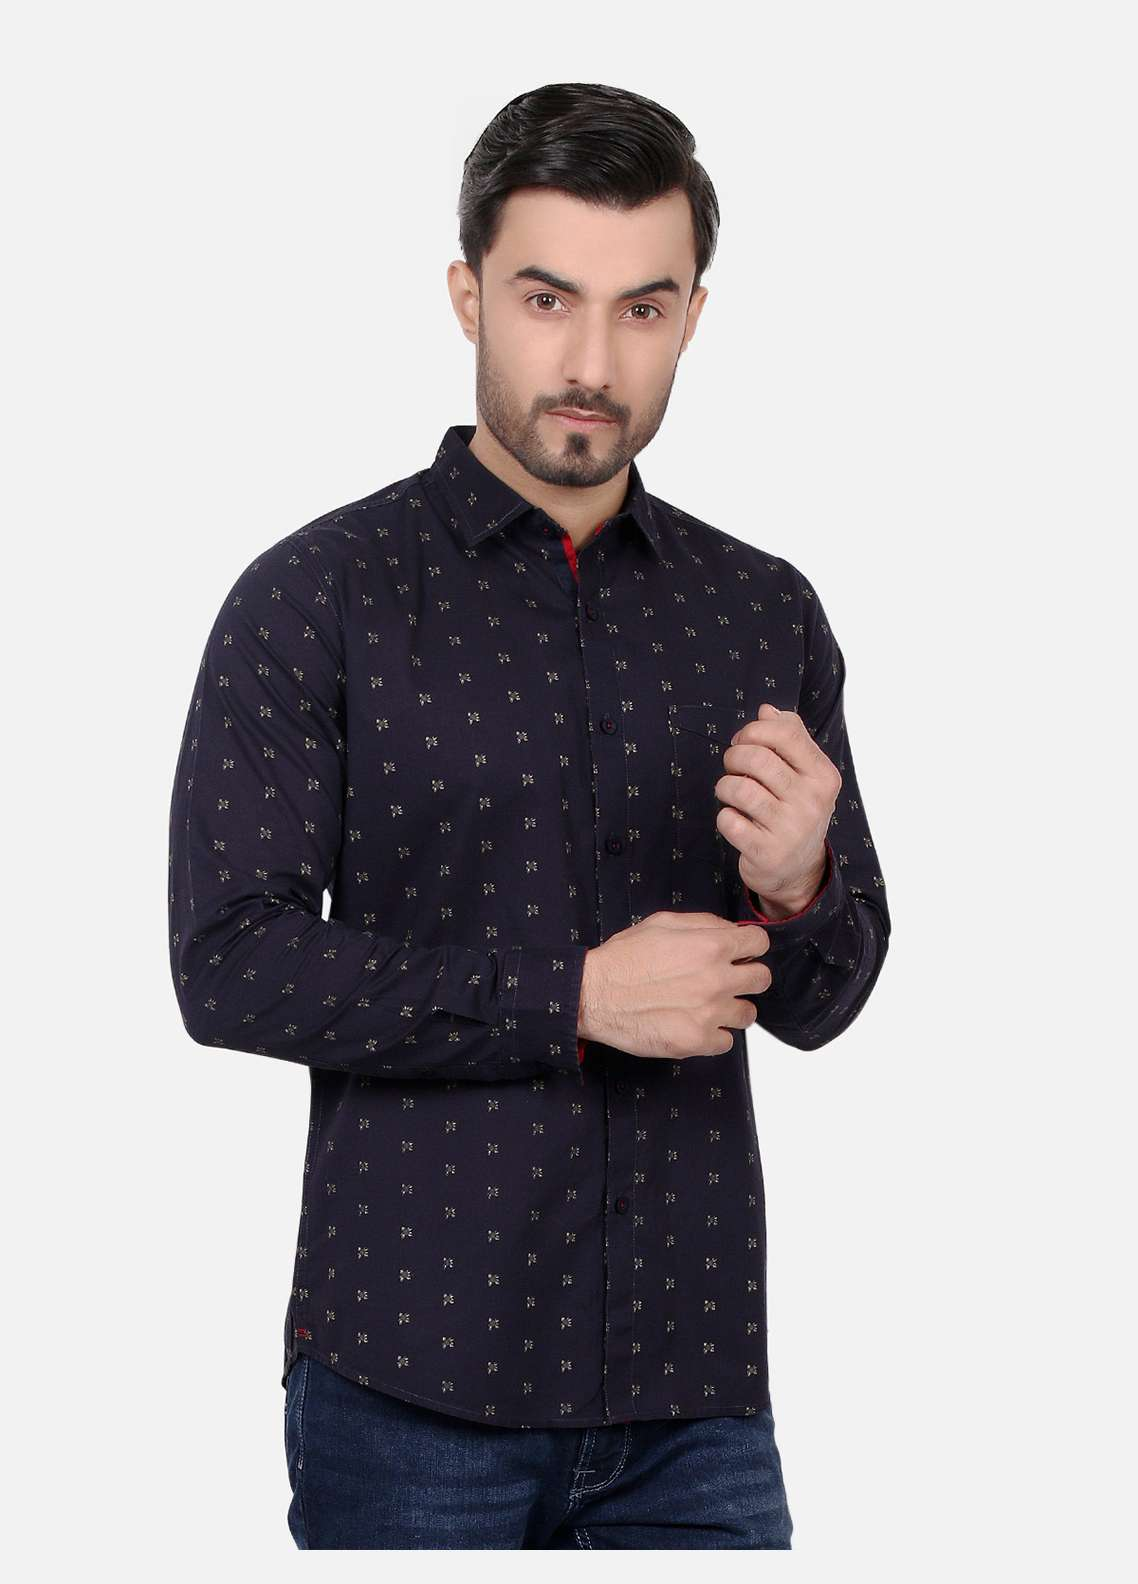 Furor  Casual Men Shirts - Navy Blue FRM18CS 31196